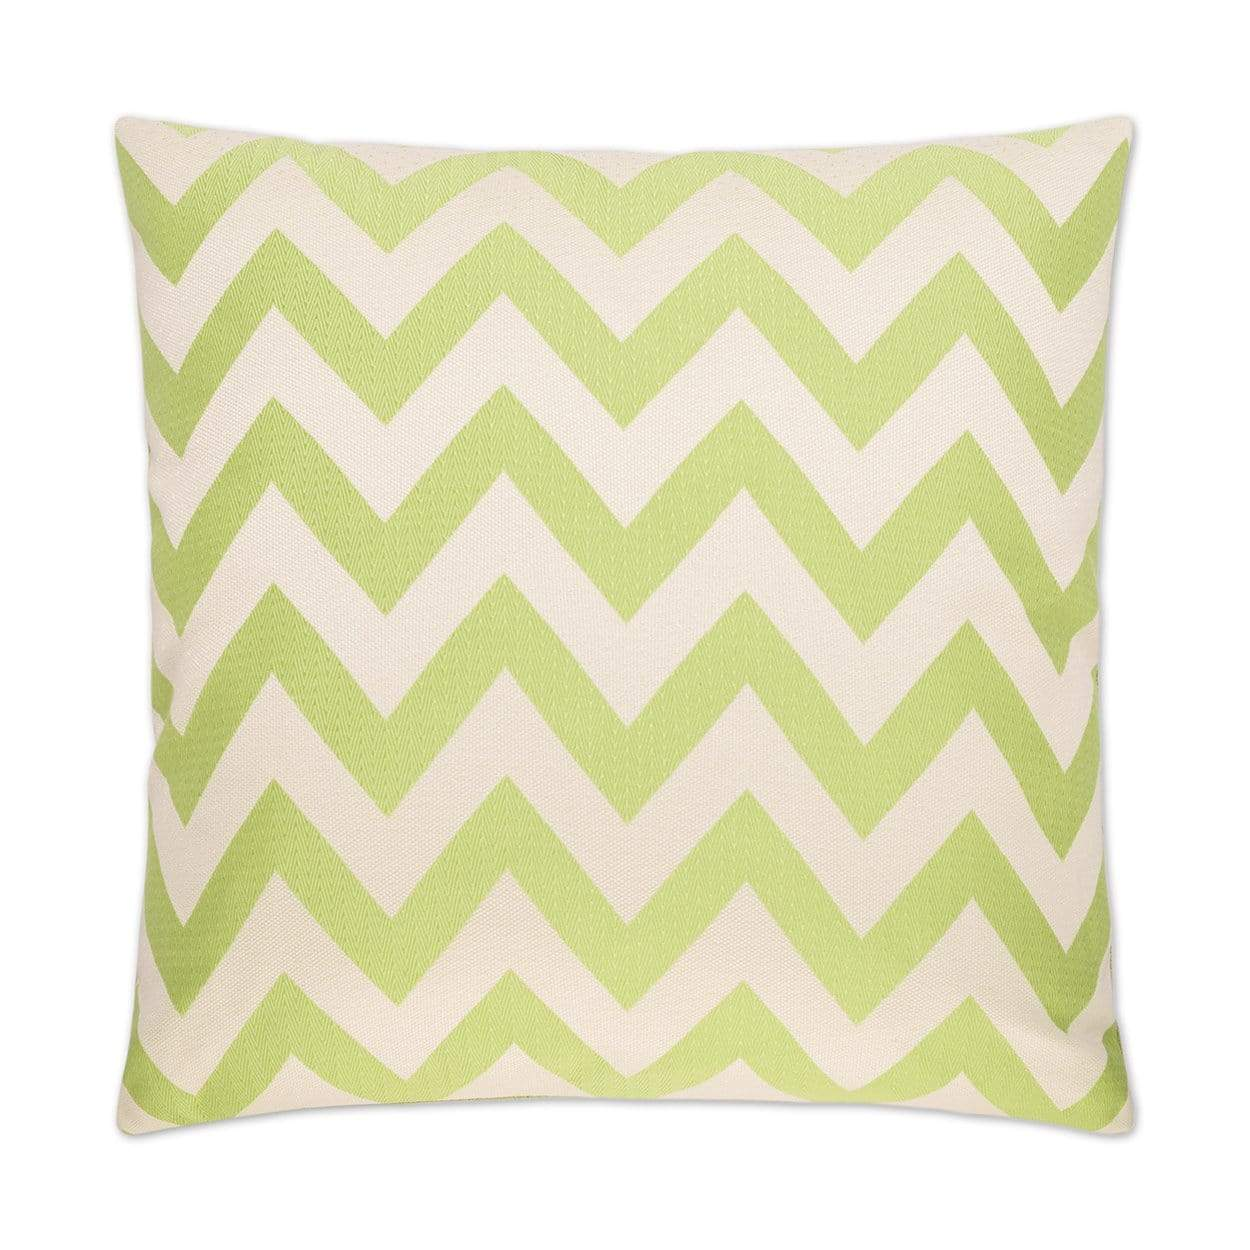 D.V. Kap D.V. Kap Chevron Chic Pillow - Available in 3 Colors Green 2313-G